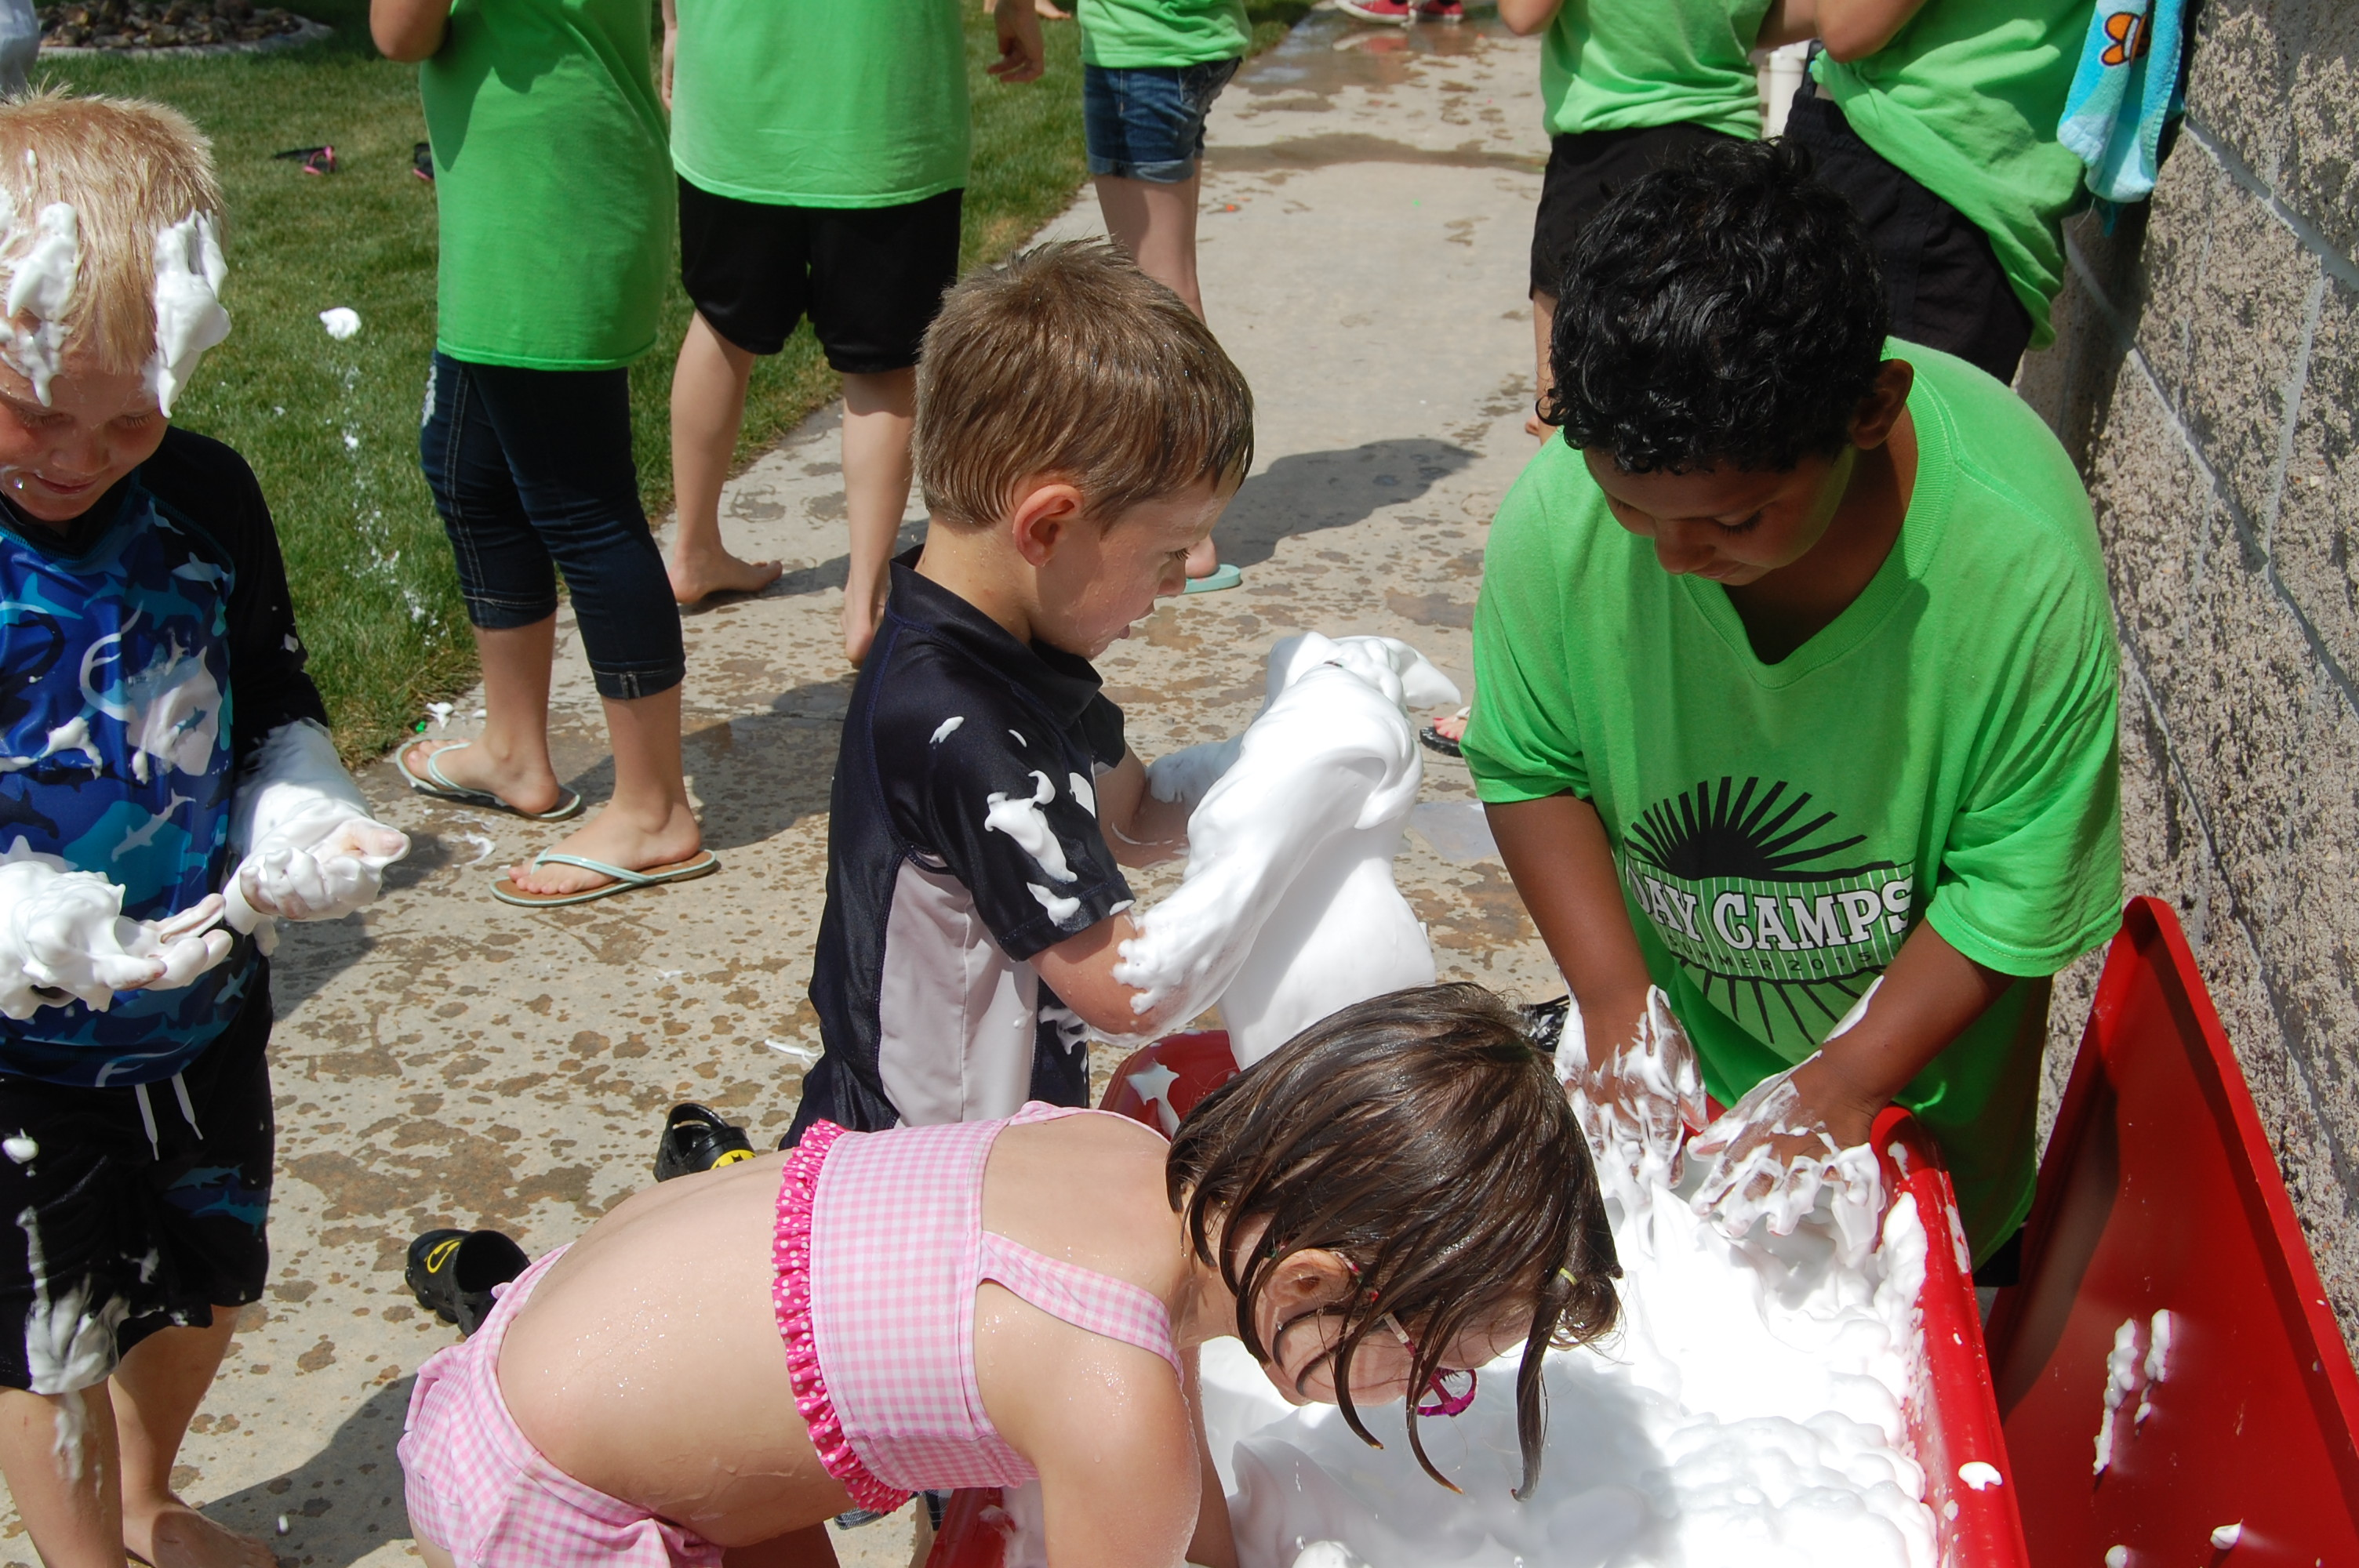 digging for treasures in shaving cream